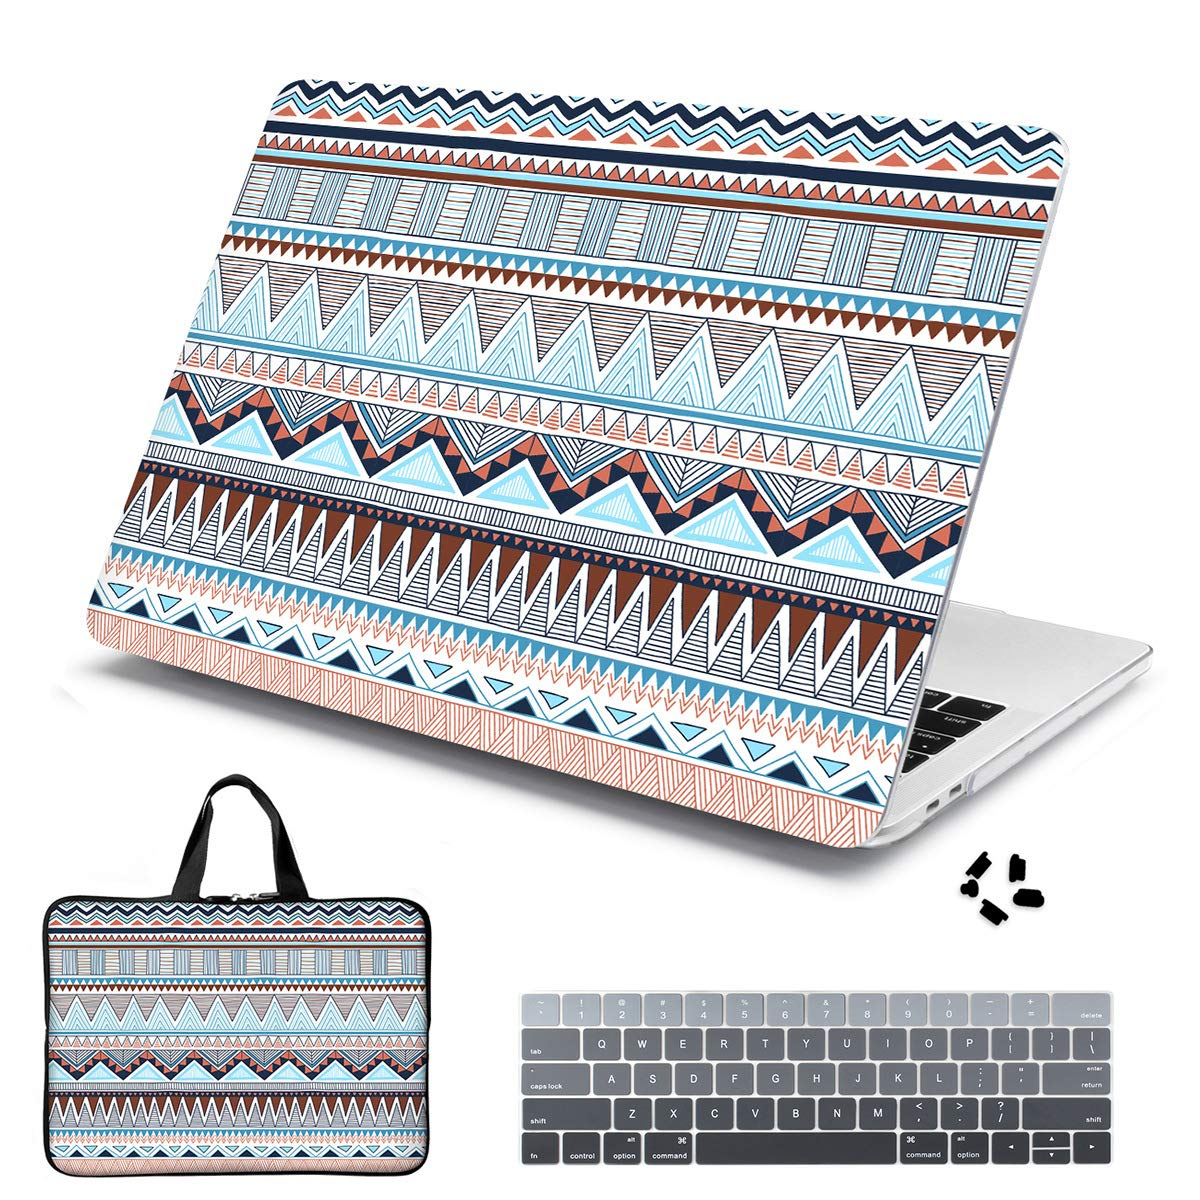 2493ffd7be87 Batianda Laptop Sleeve with Handle Case for New MacBook Air 13 inch (2018  with Retina Touch ID,Model A1932) Keyboard Cover + Dust Plug (4 in 1  Bundle) ...